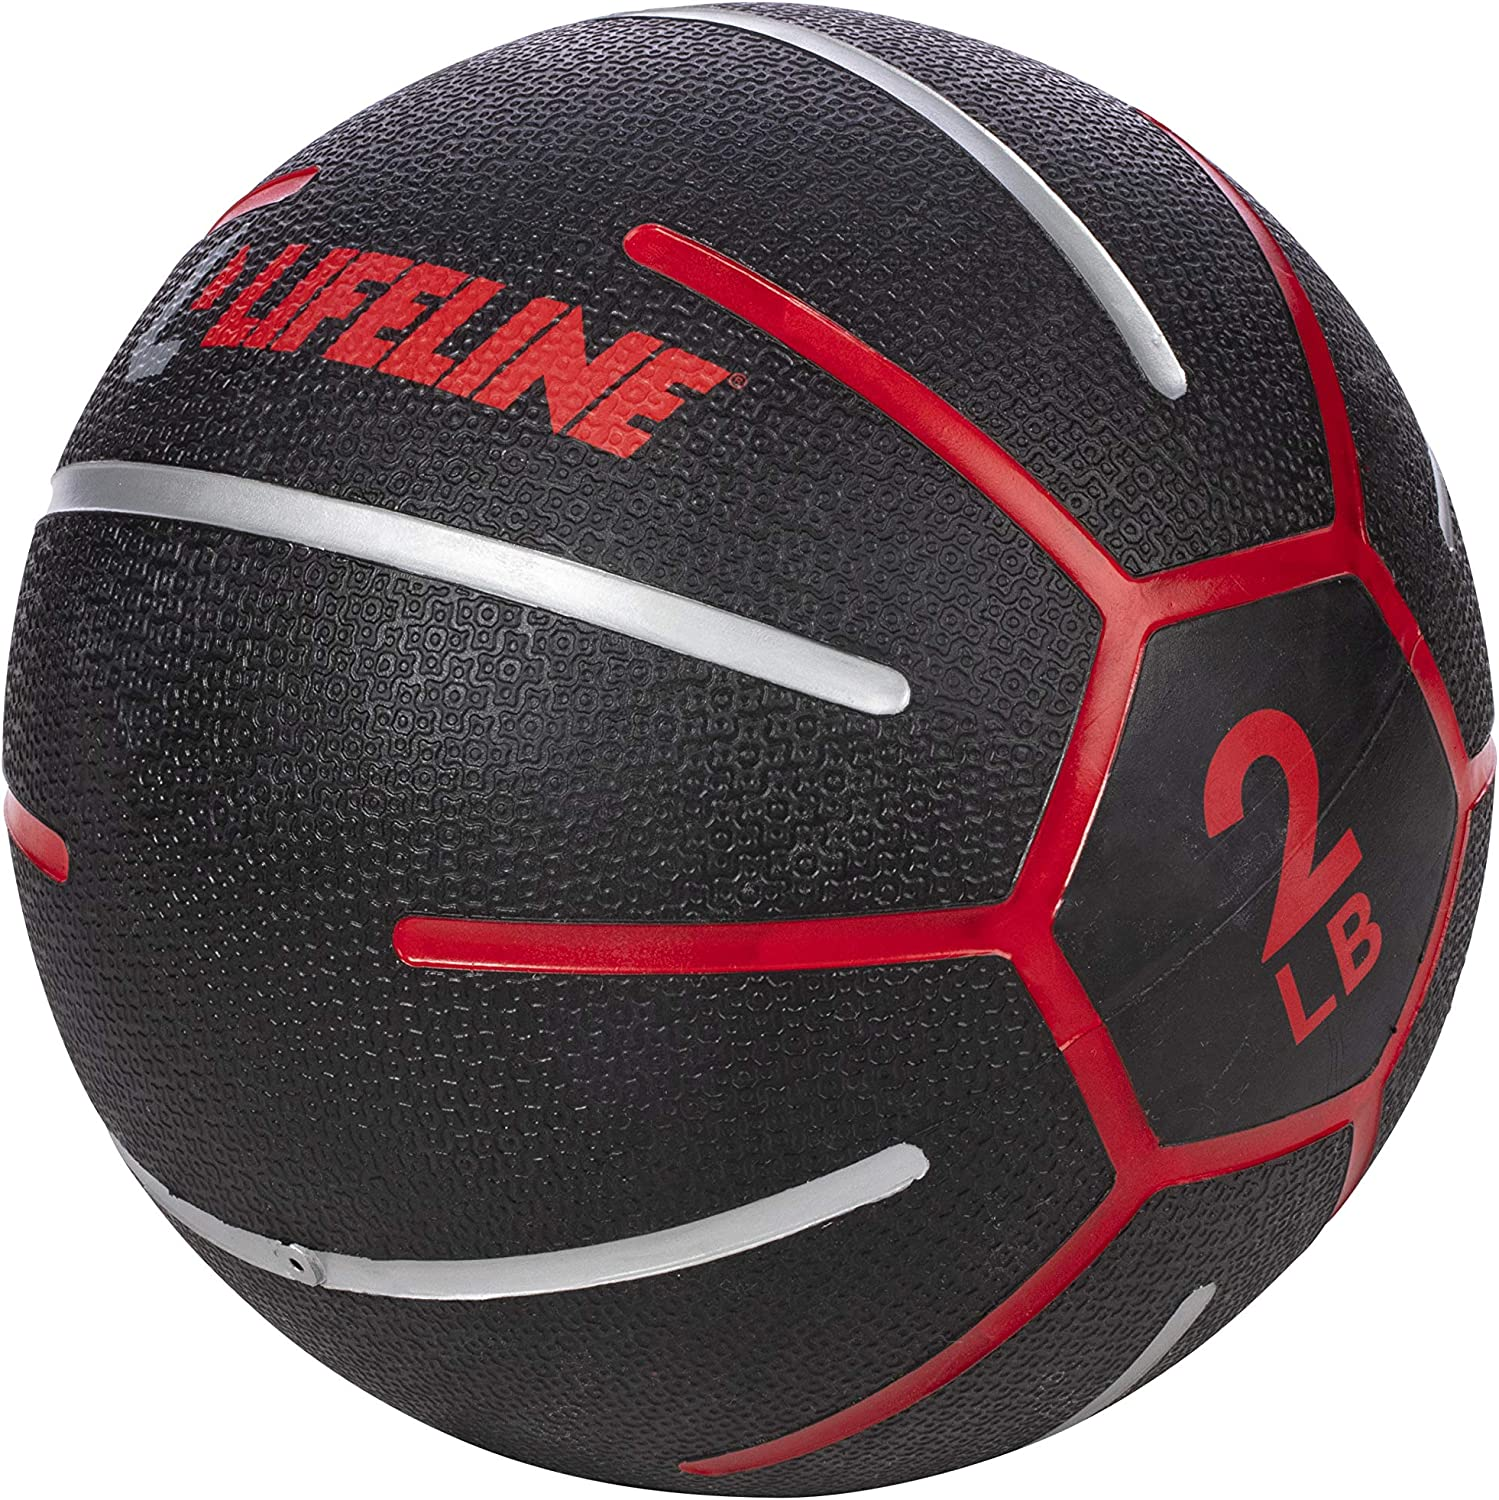 Lifeline Medicine Ball to Develop Total Body Strength, Power and Stability : Sports & Outdoors